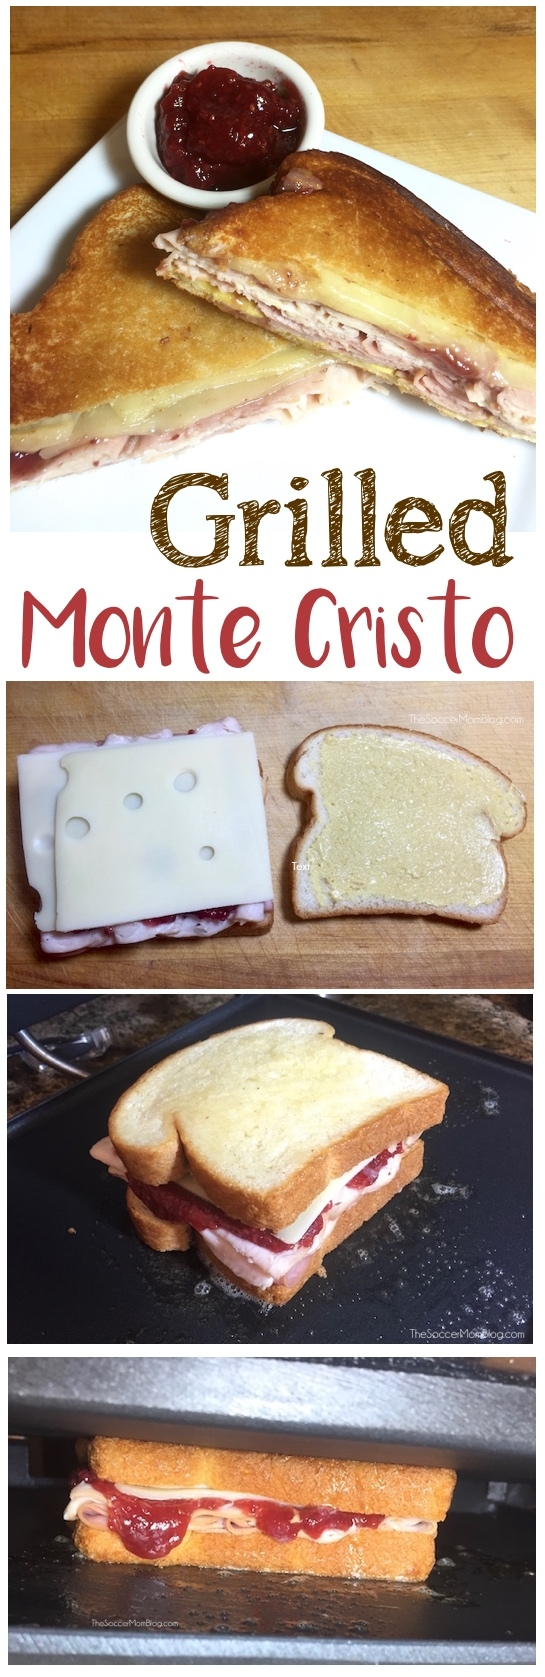 "The ""smarter"" Monte Cristo Sandwich (grilled, not fried!) that's so delicious you'll want it this way every time! So easy you can make it at home!"